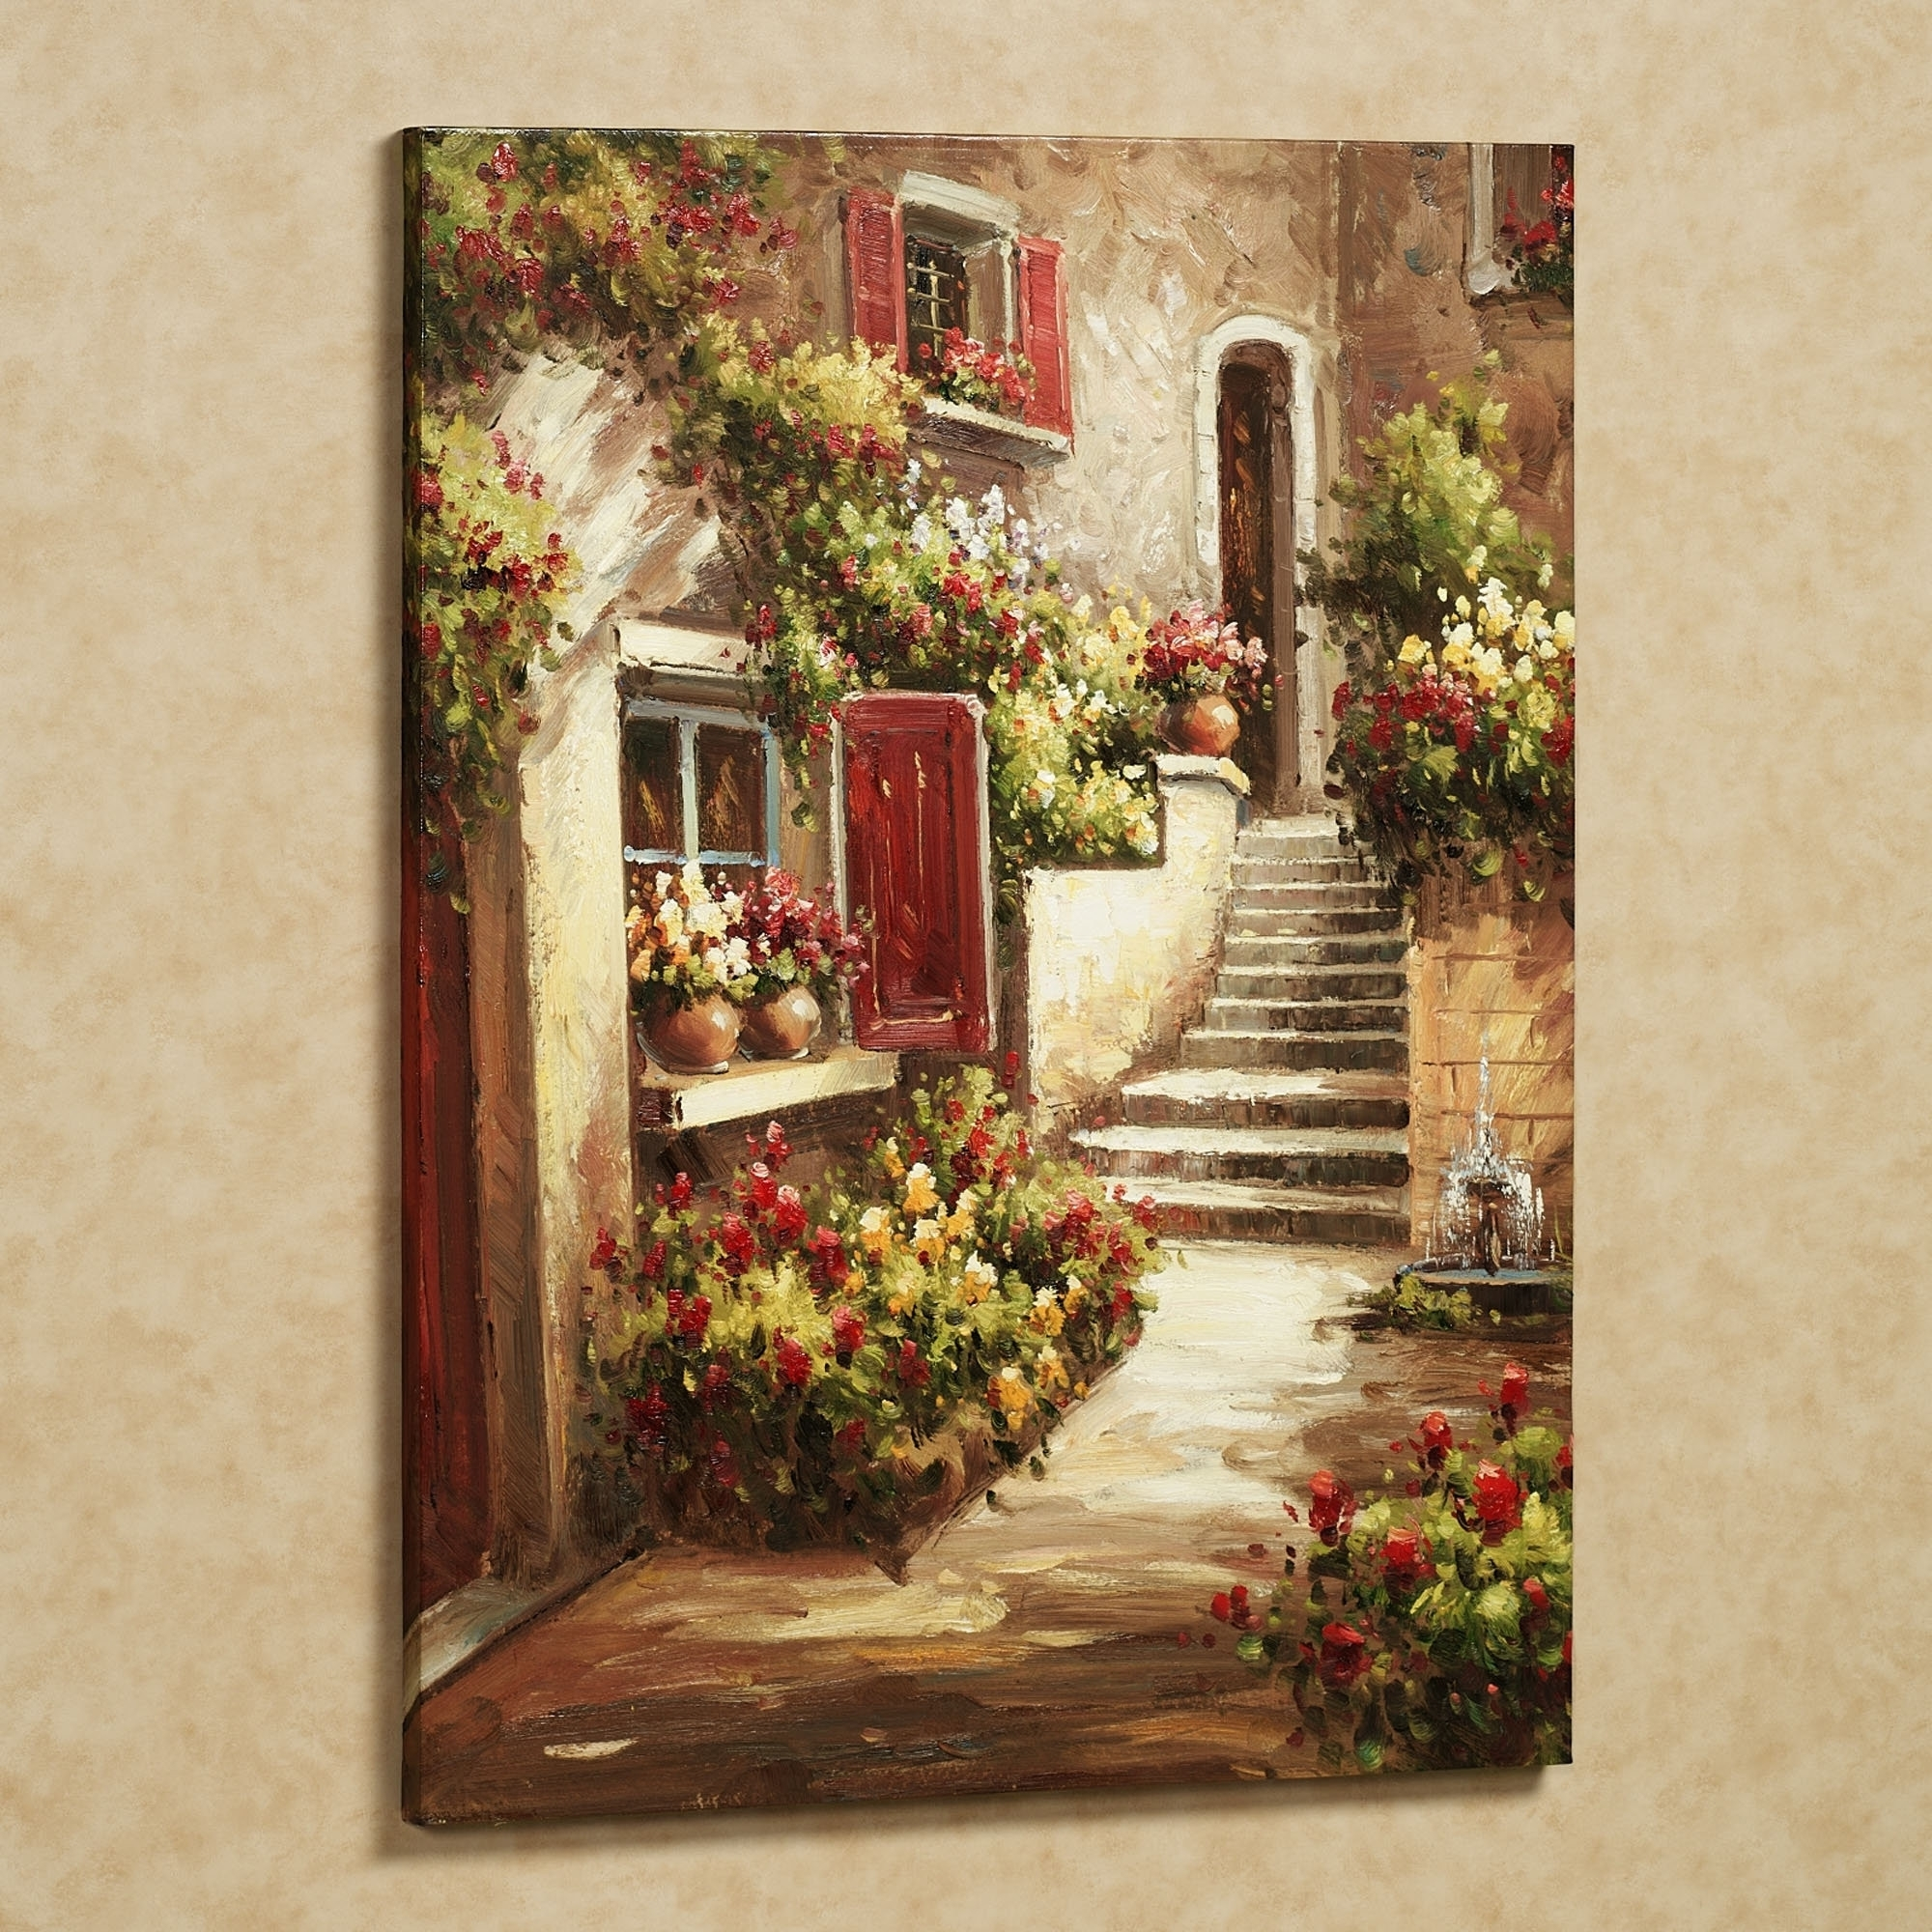 Country Wall Art Intended For Preferred Showing Photos Of French Country Wall Art Prints View 7 15 Fair (View 3 of 15)